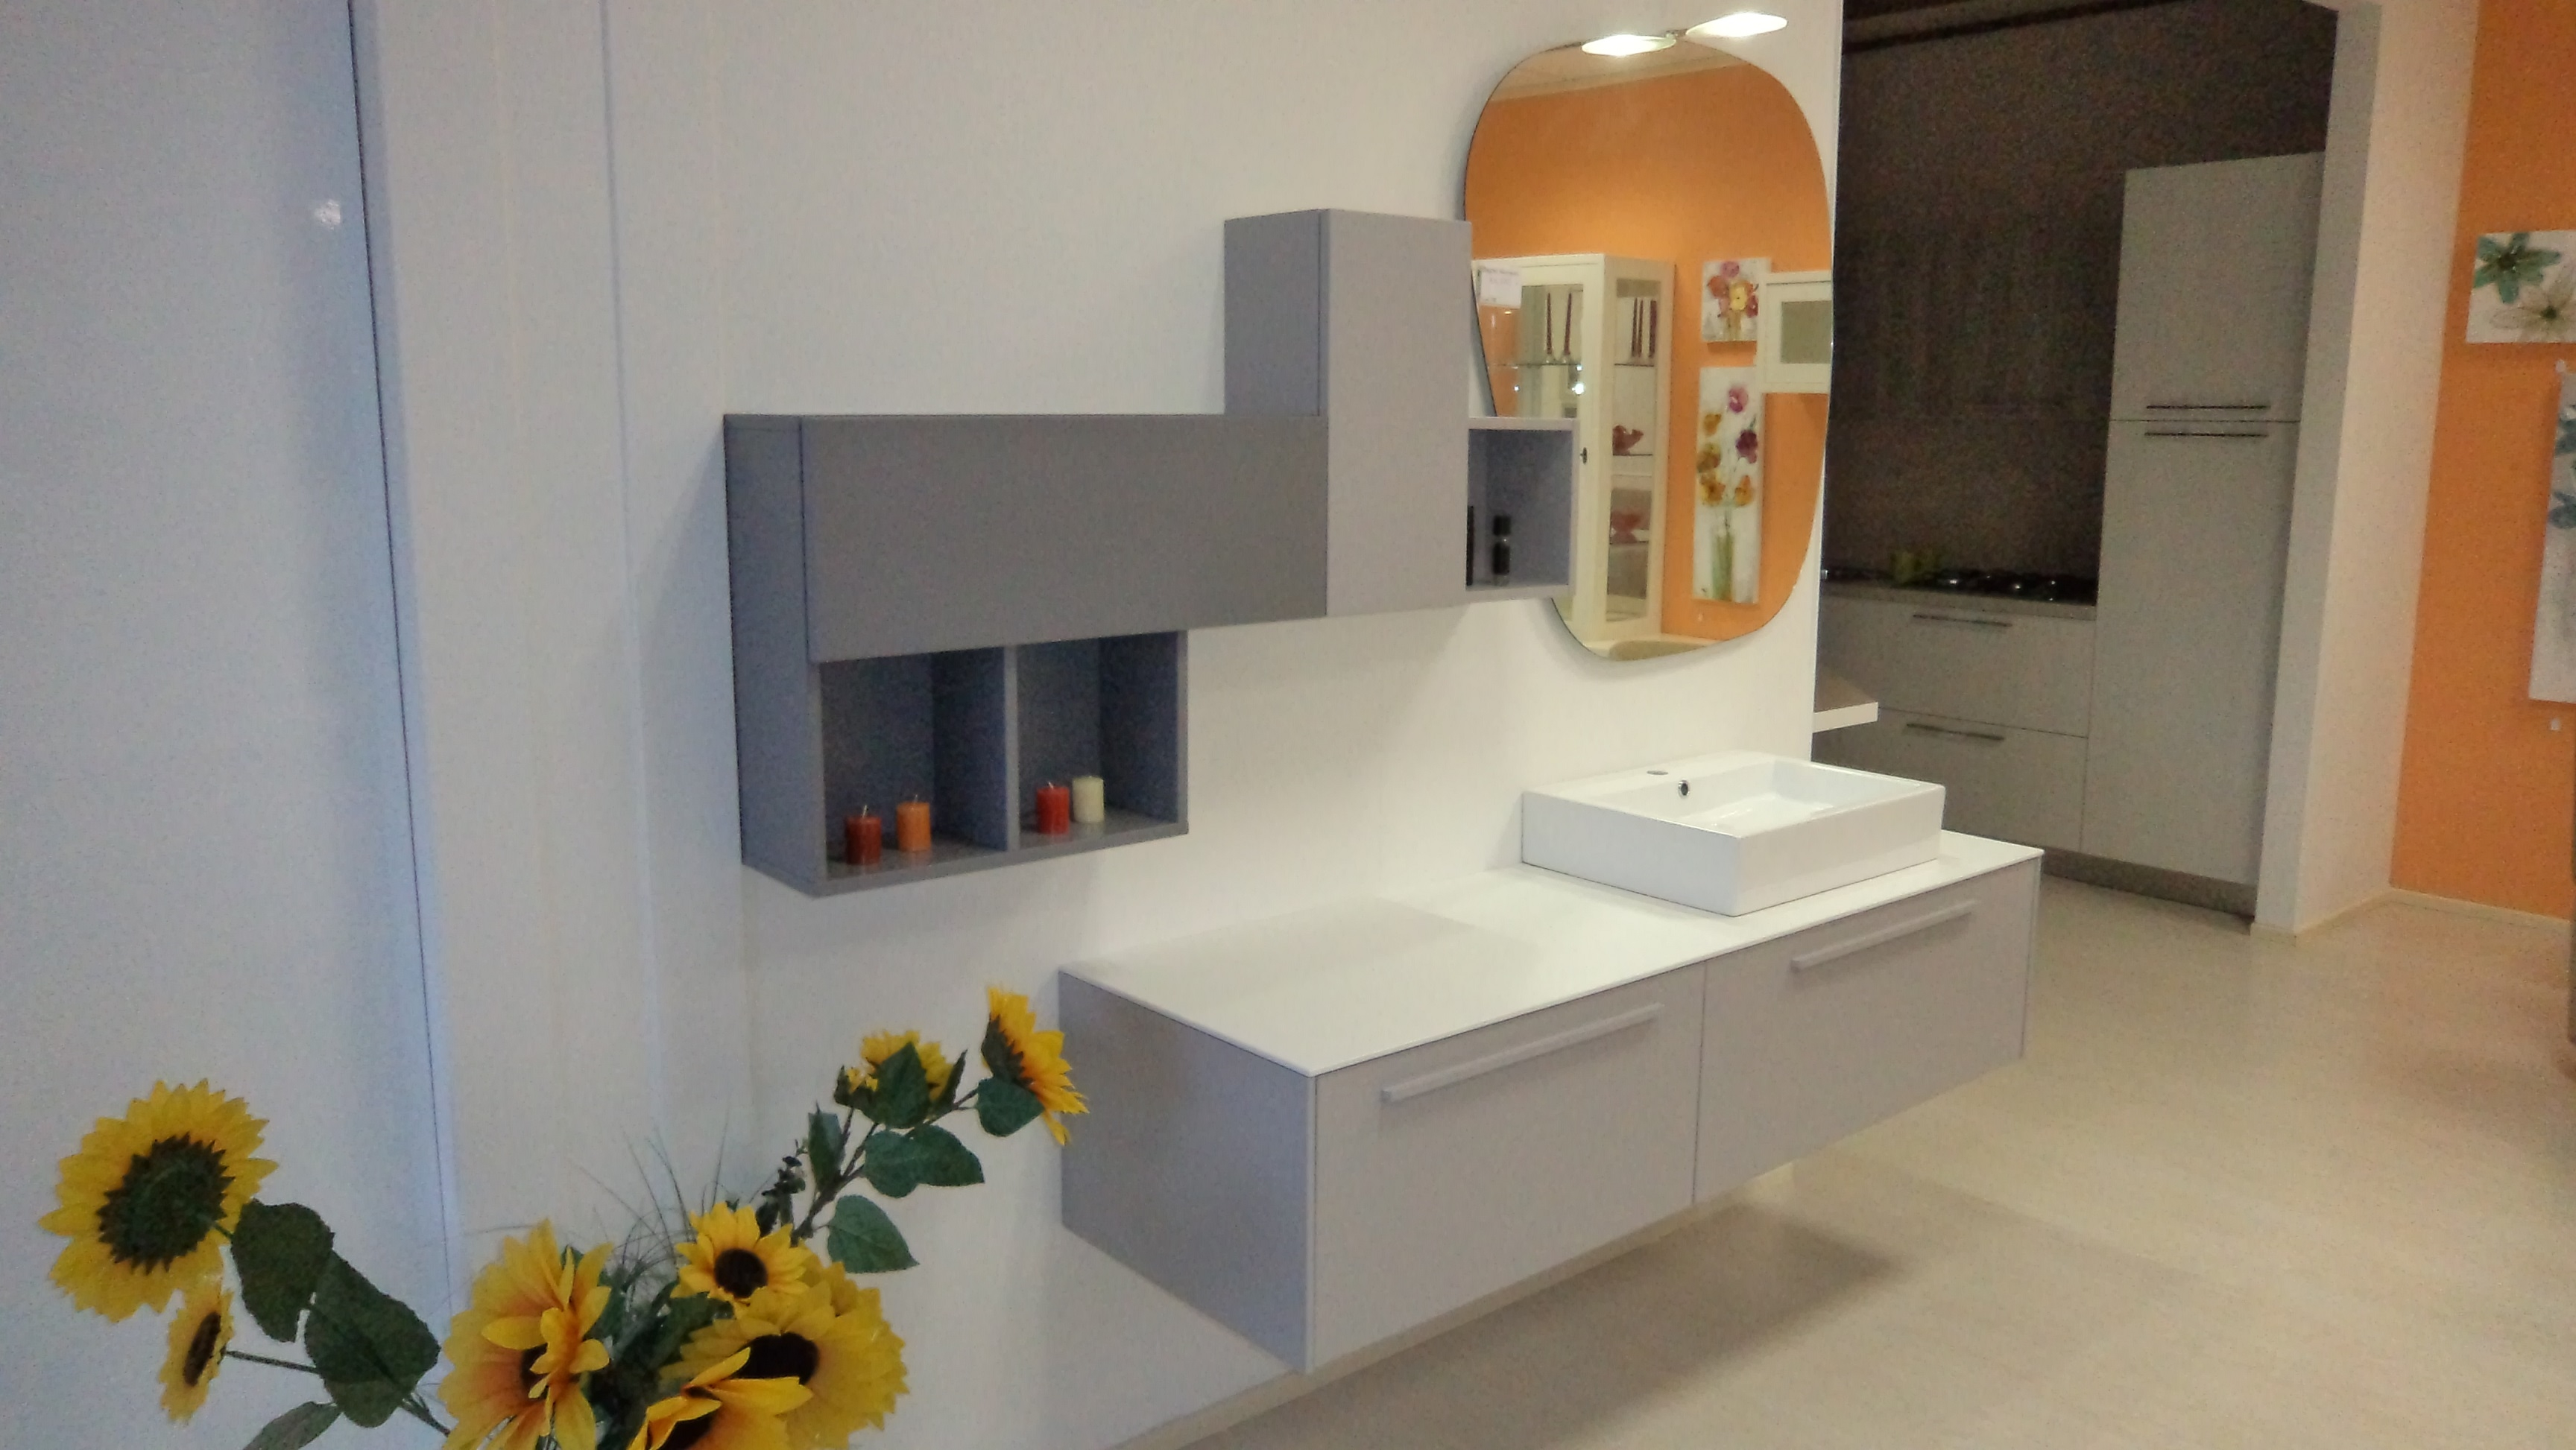 Outlet Mobili Bagno Lissone. Cool Arredo Bagno Milano Outlet ...